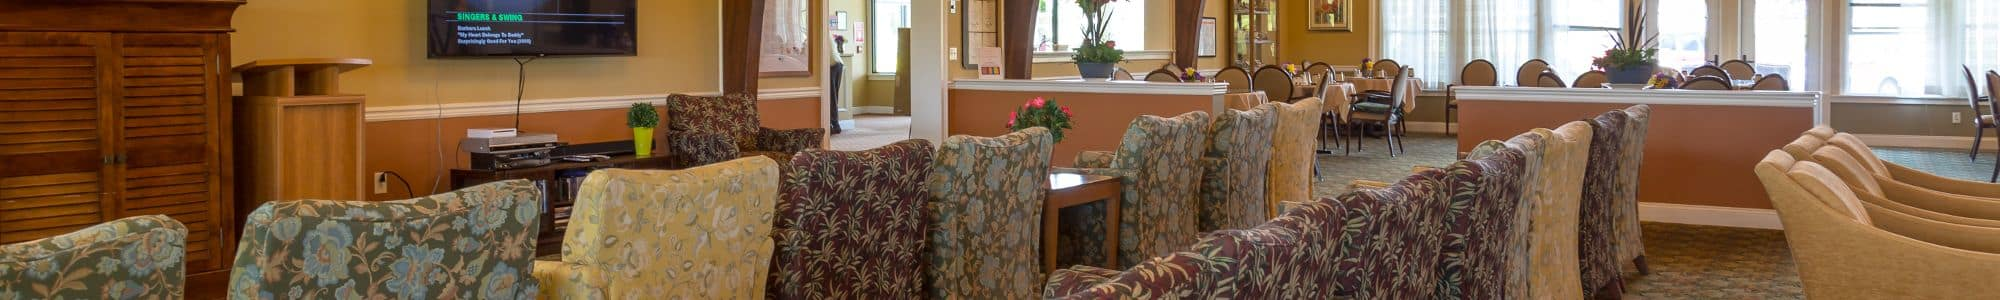 Senior Living in Branchville NJ